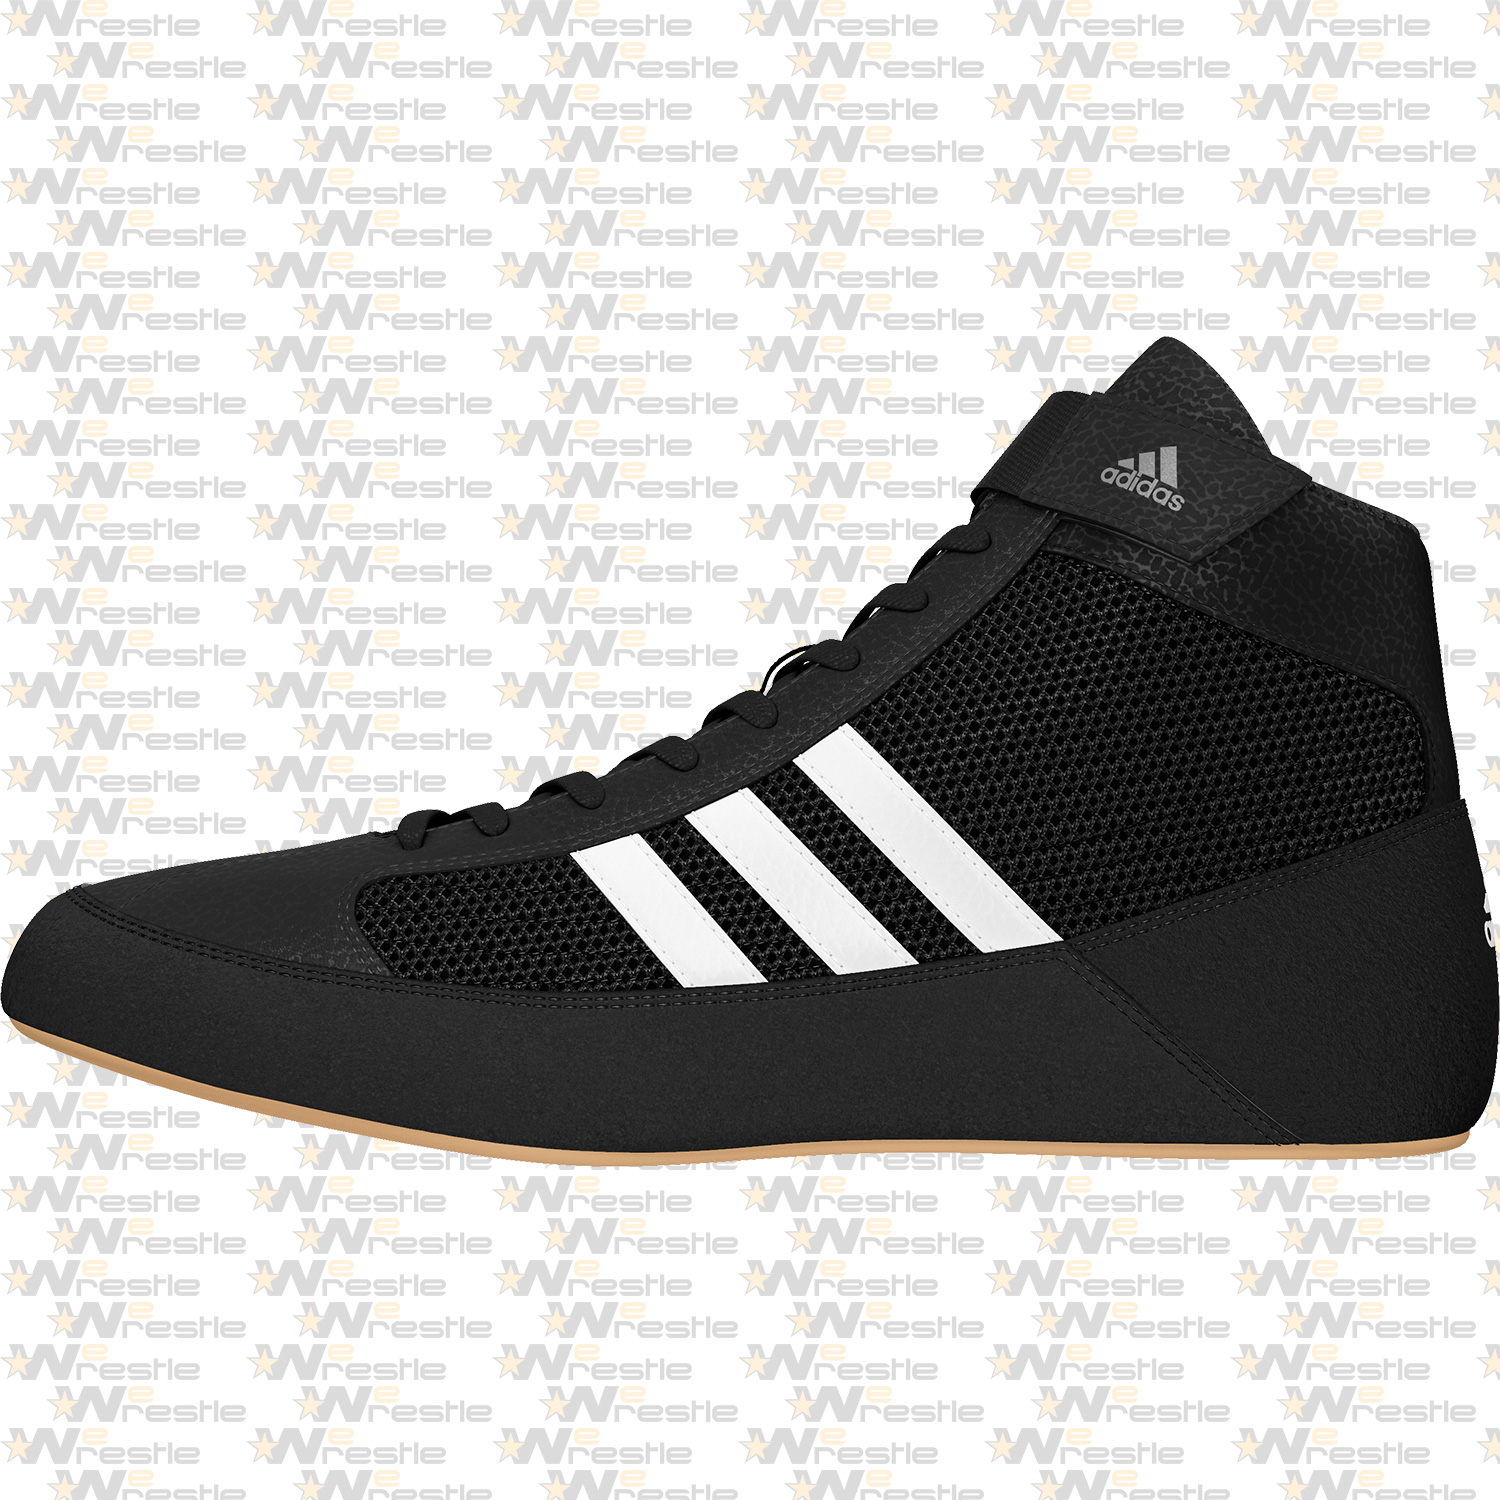 low price adidas mens hvc 2 wrestling shoes 8aebe 649a3 0f64a9b10